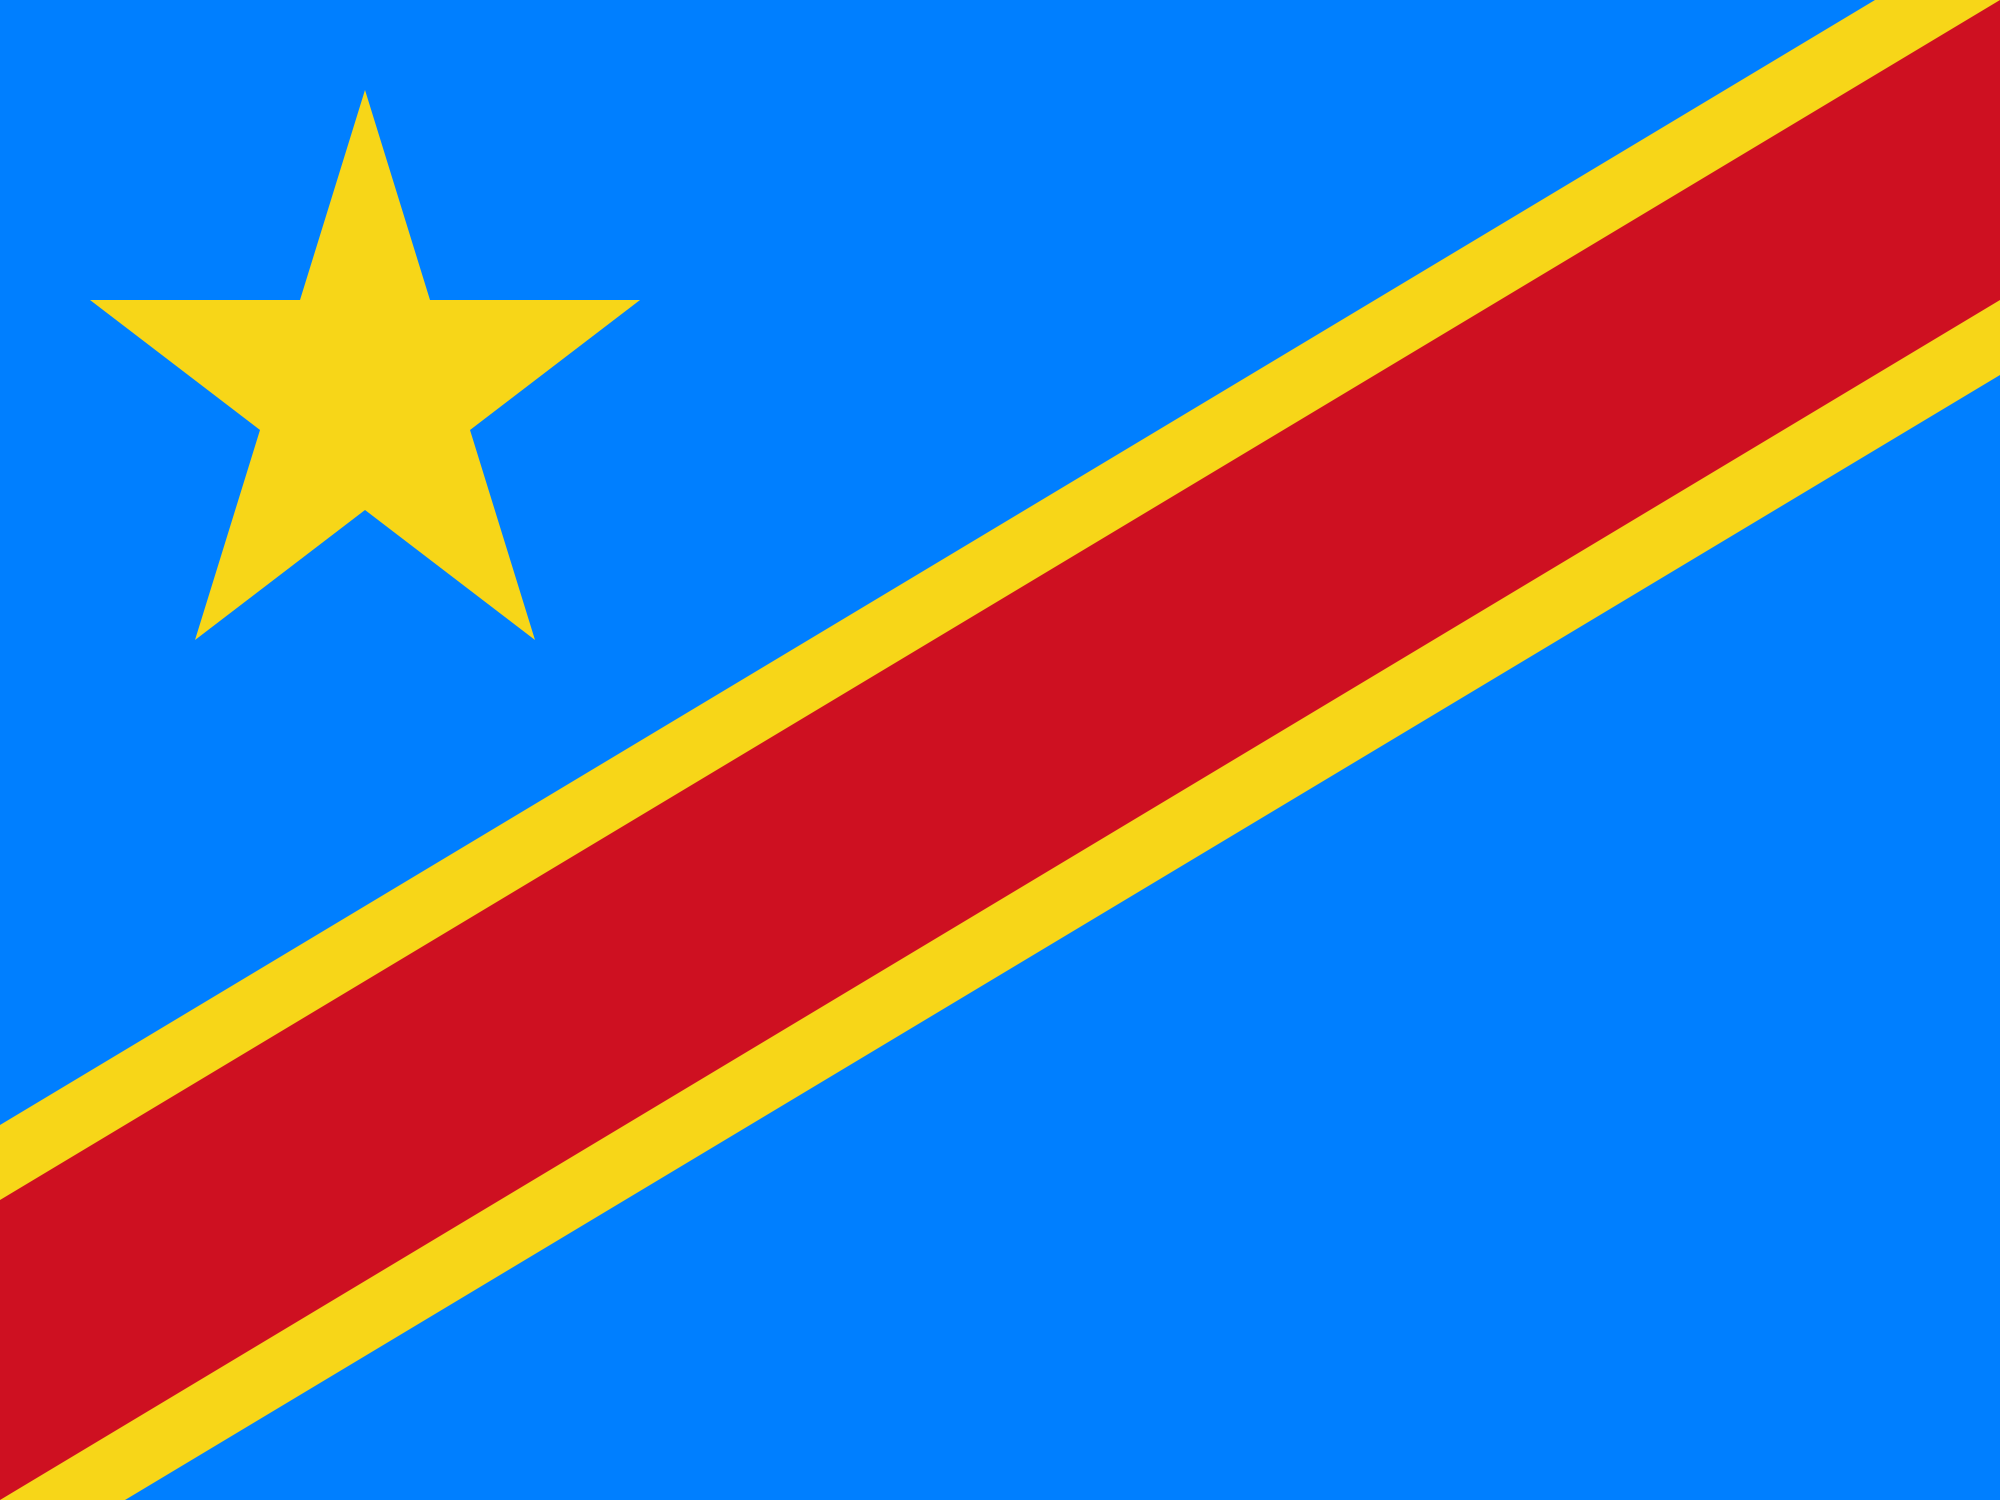 Wallpaper Of The Flag Of The Democratic Republic Of The Congo 2000x1500